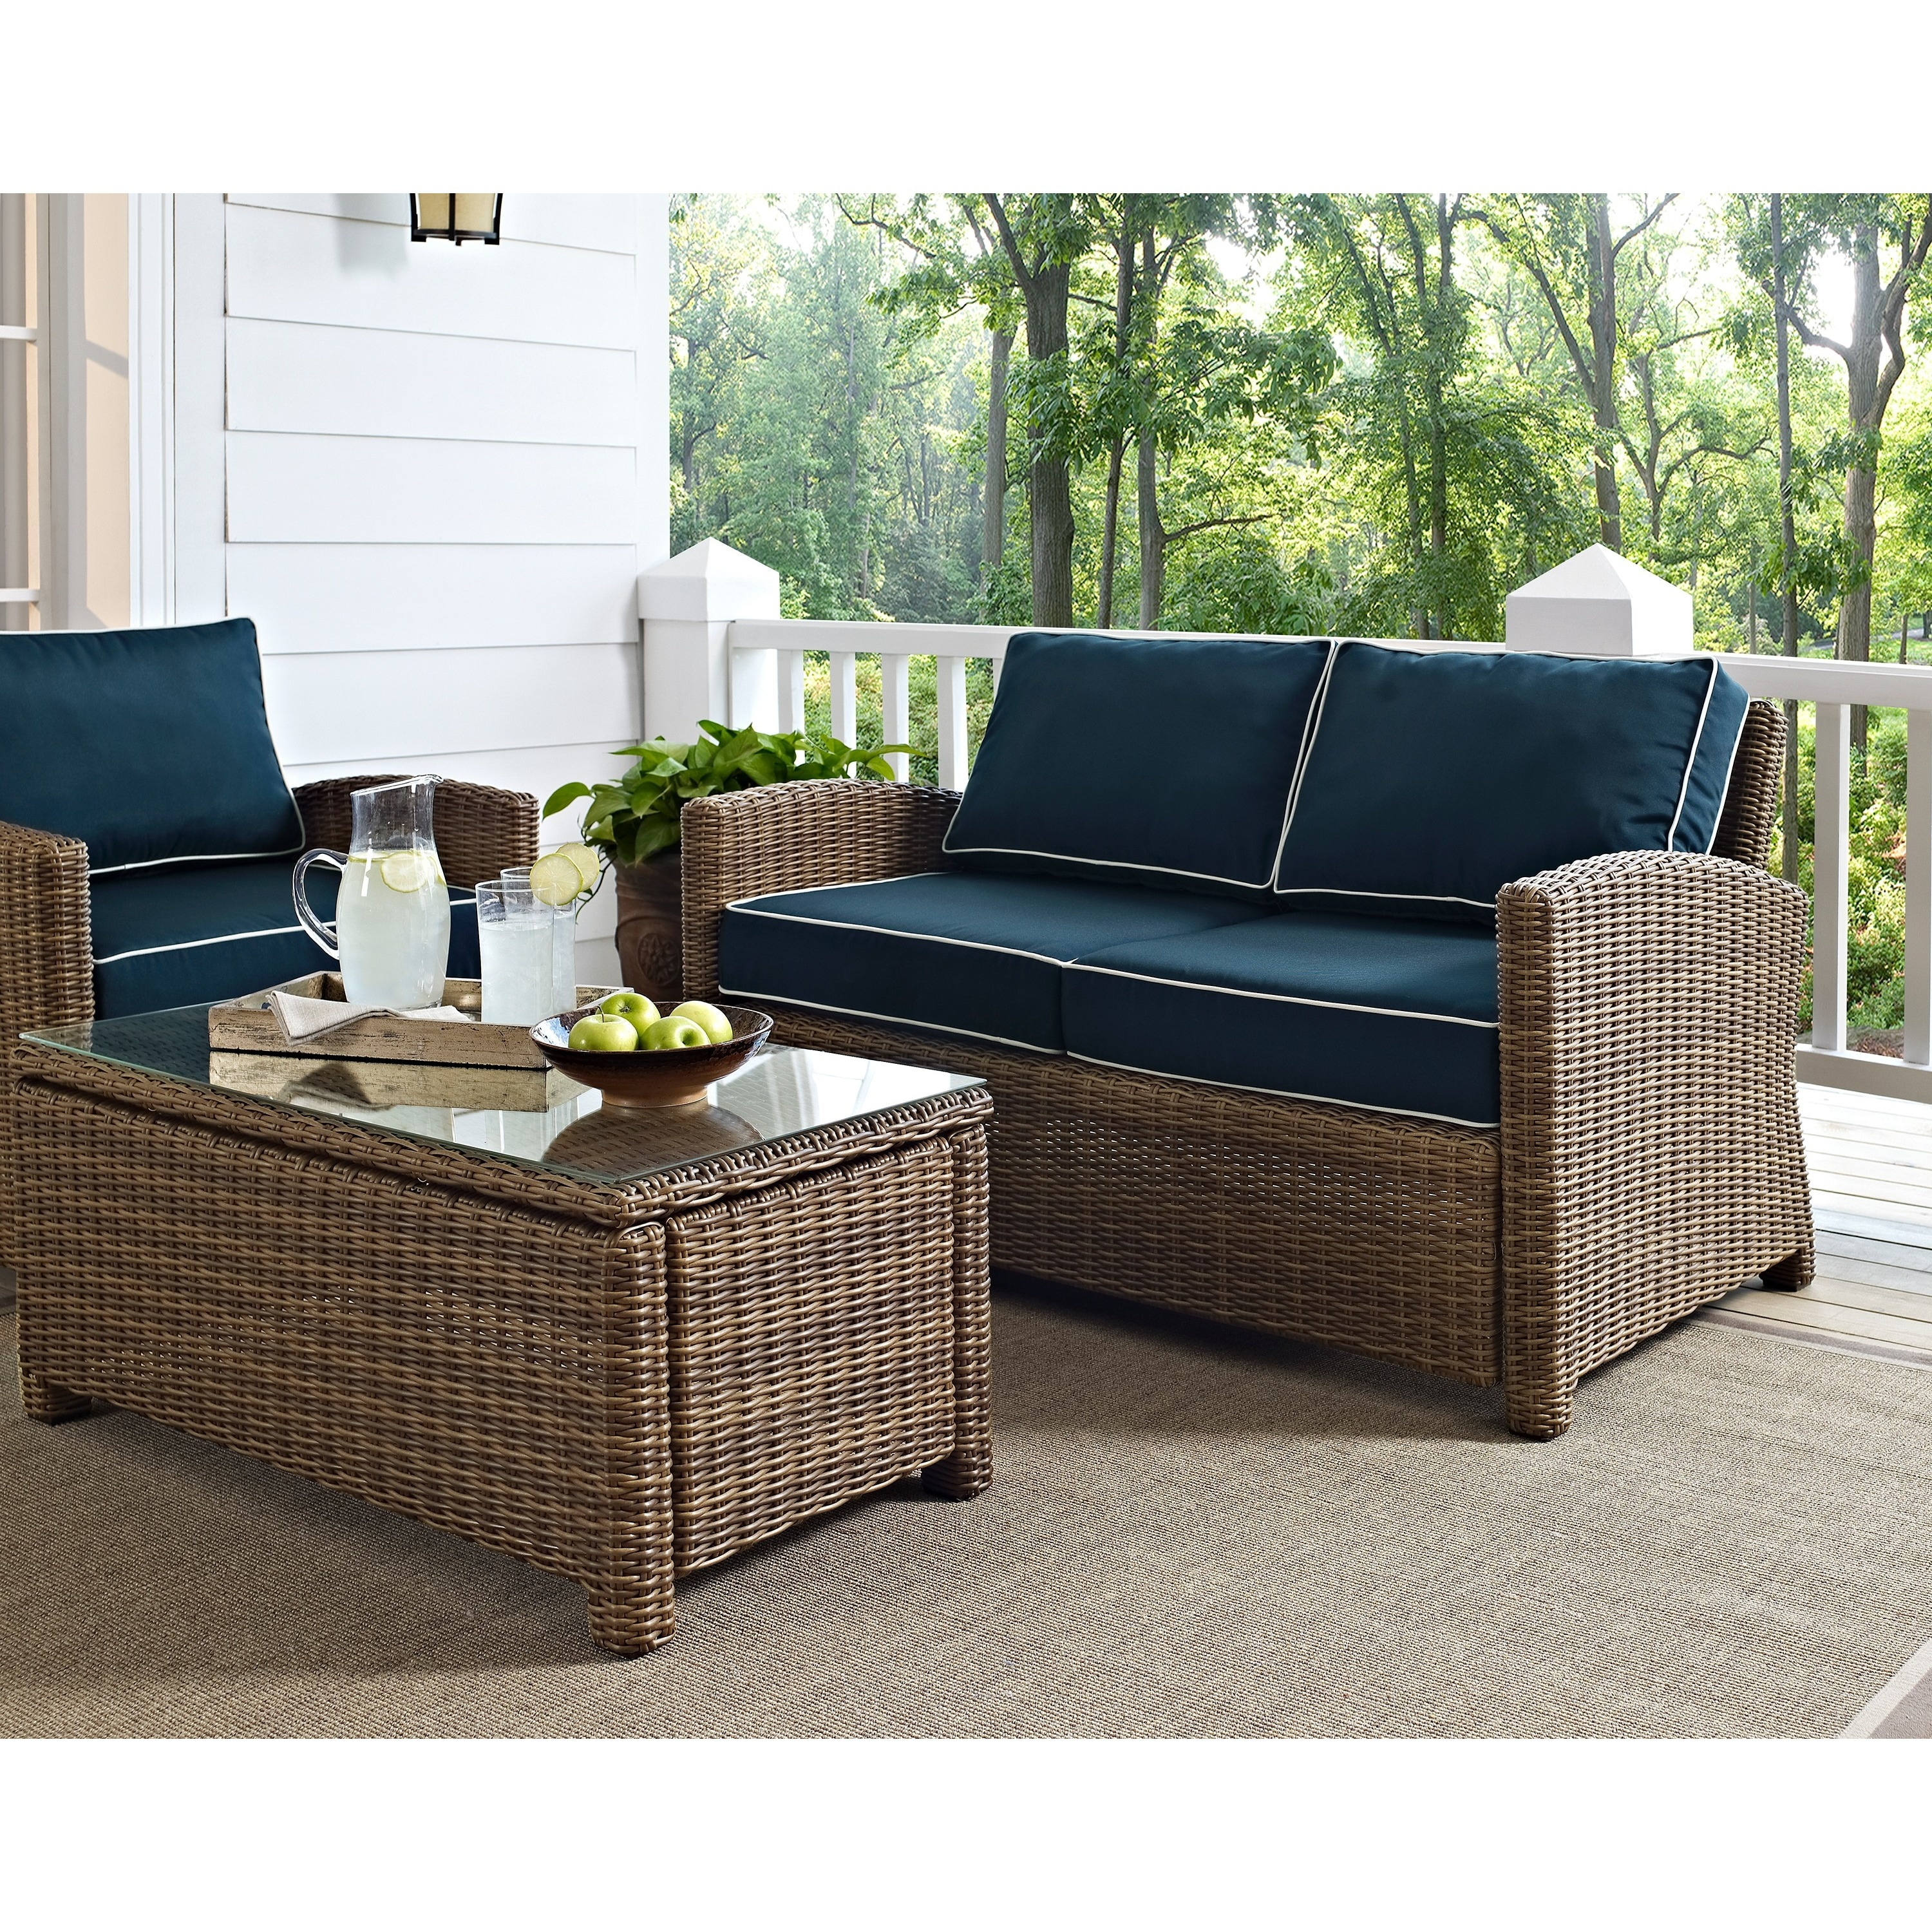 Excellent Bradenton Outdoor Wicker Loveseat With Navy Cushions Cjindustries Chair Design For Home Cjindustriesco